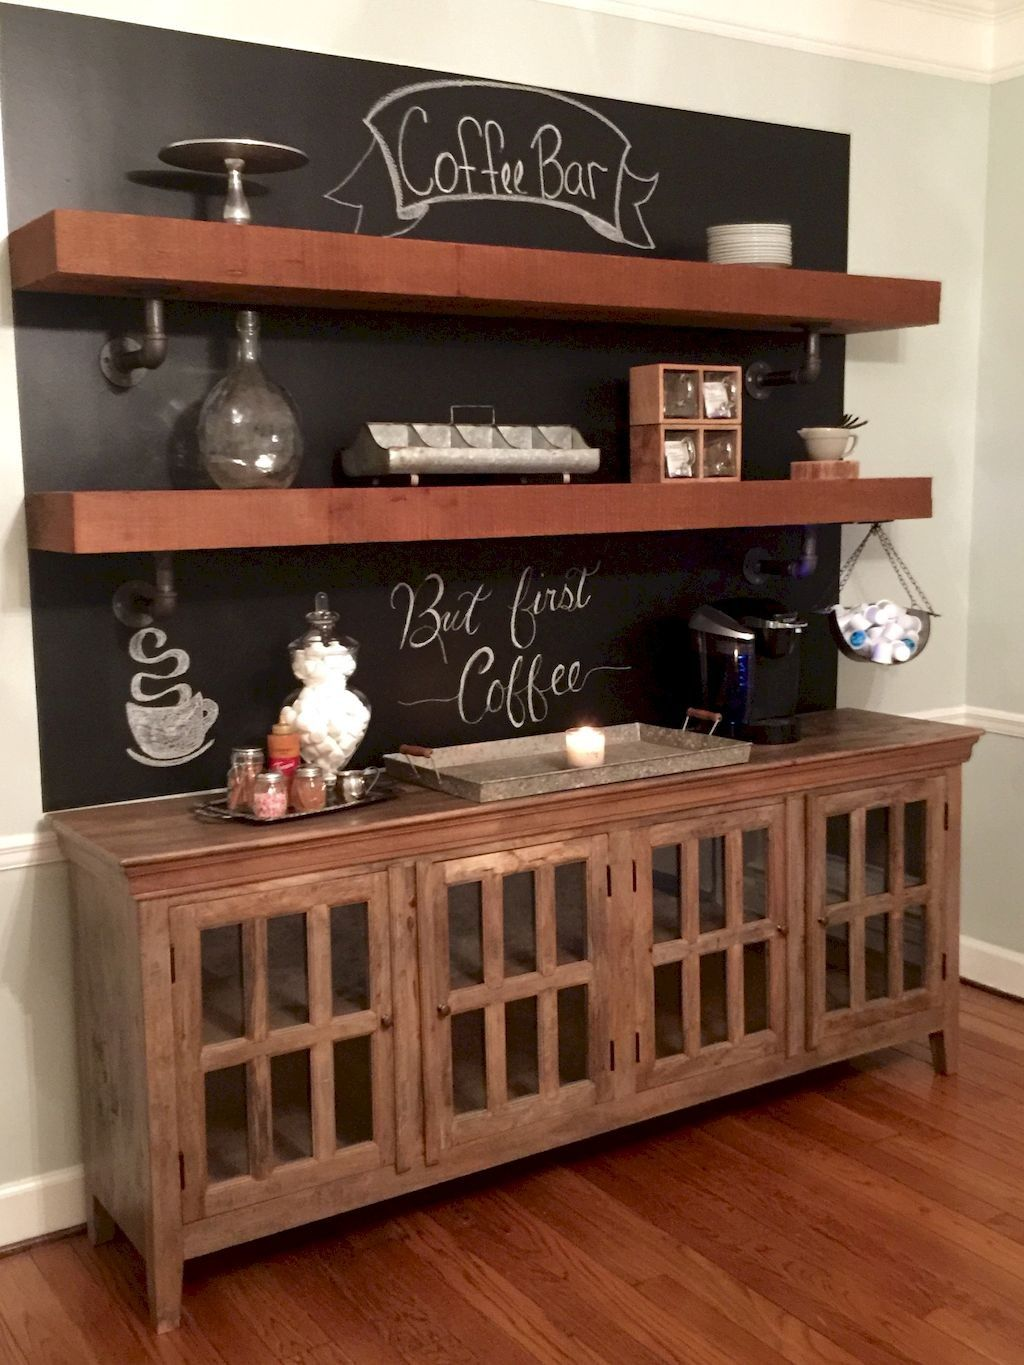 Top 29 Diy Ideas Adding Rustic Farmhouse Feels To Kitchen: 30+Cool Home Coffee Bar Ideas For Coffee Addict